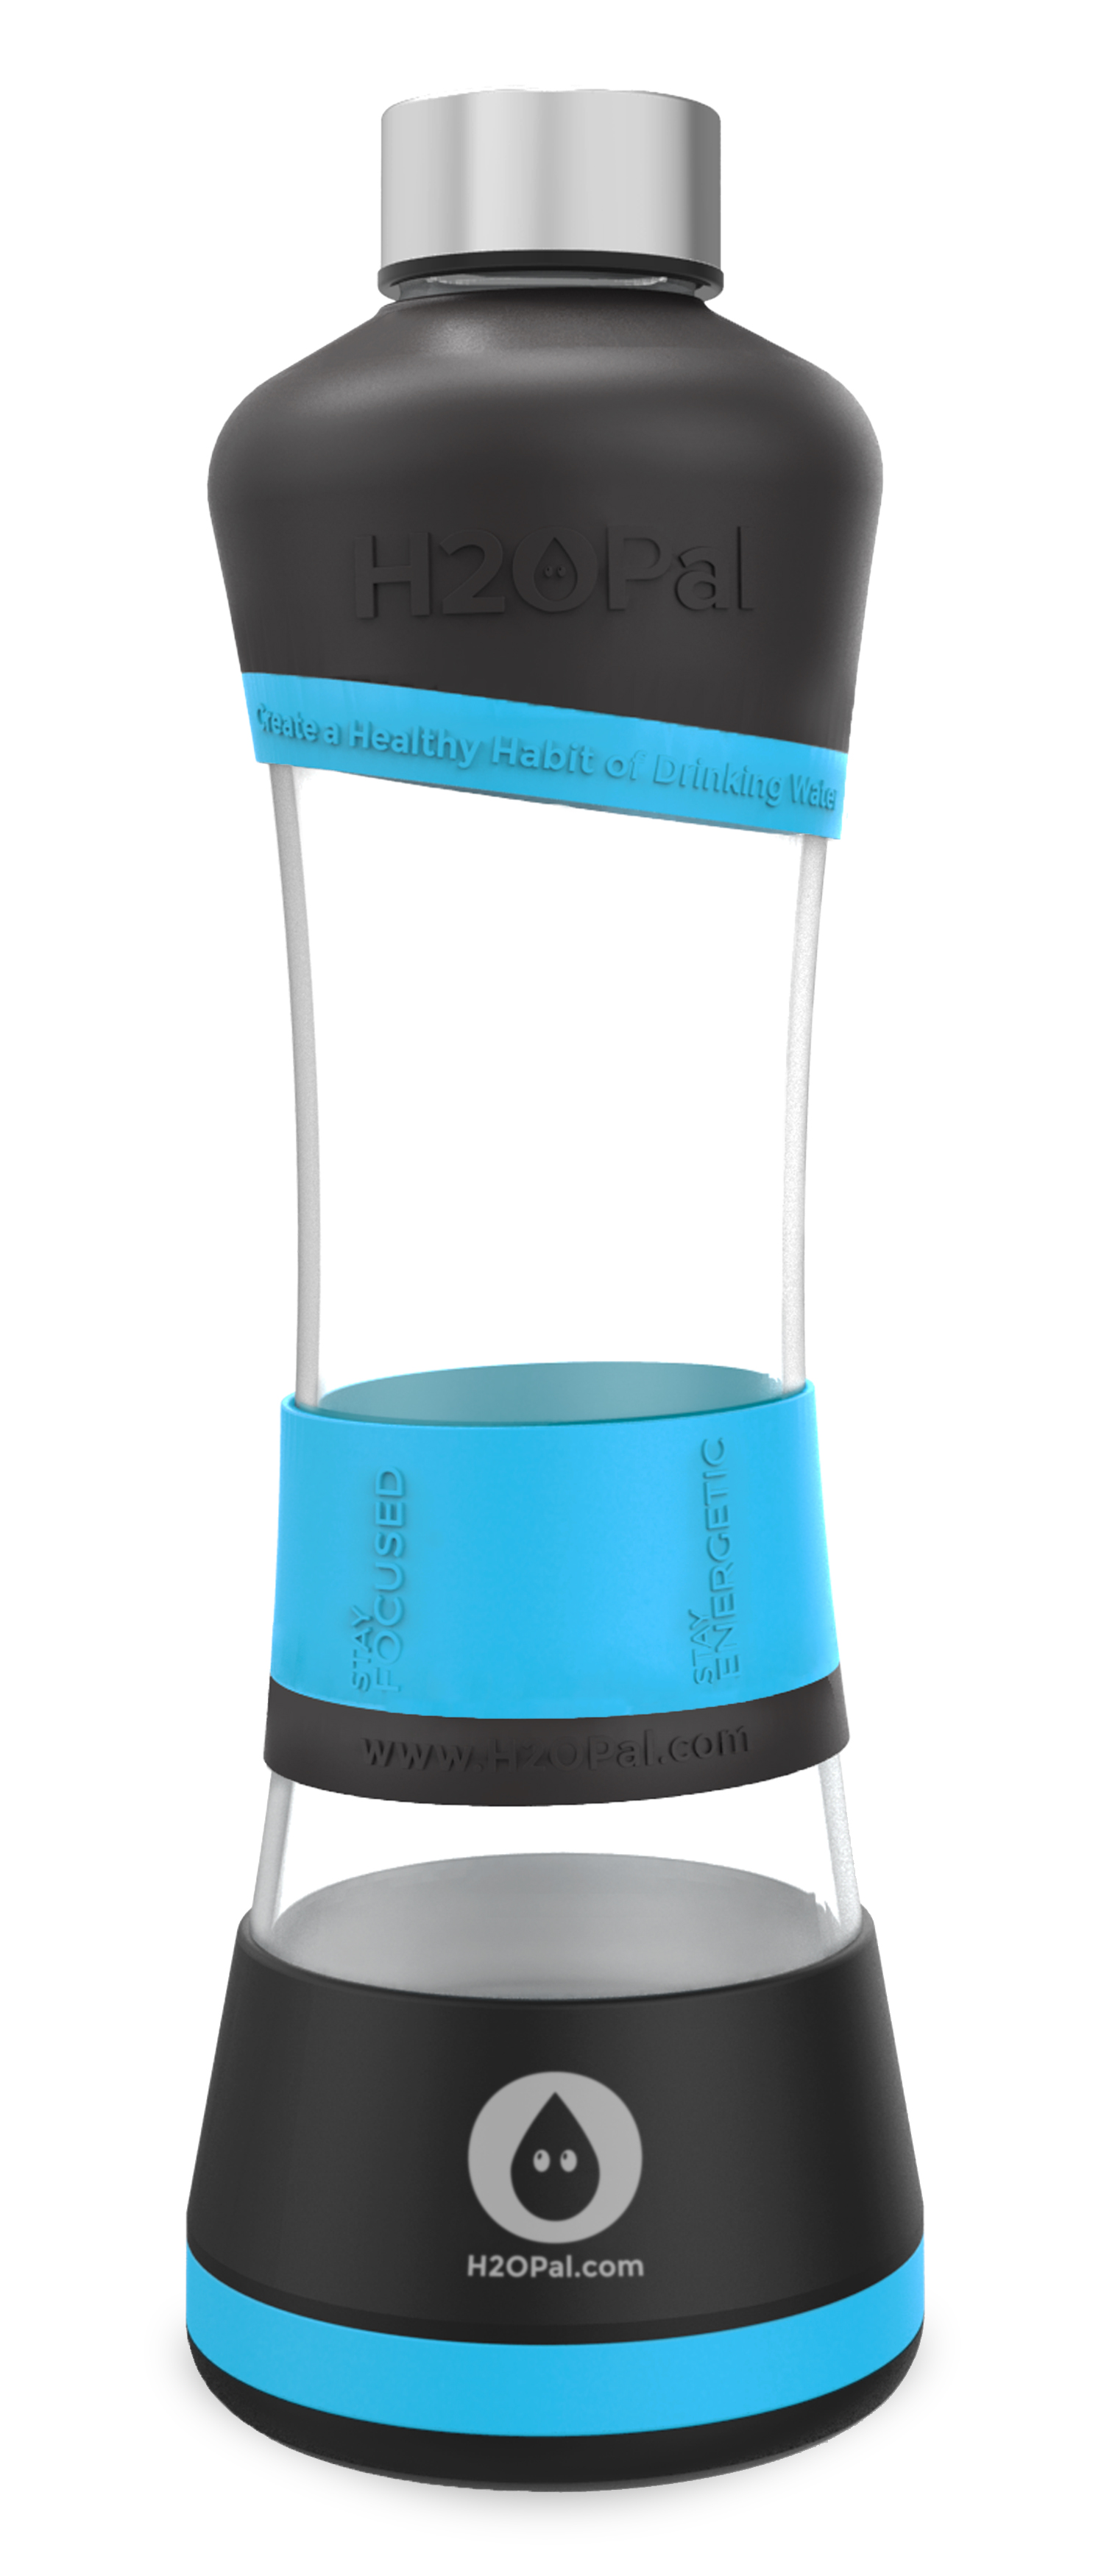 H2OPal Smart Water Bottle Hydration Tracker- Blue and Black image